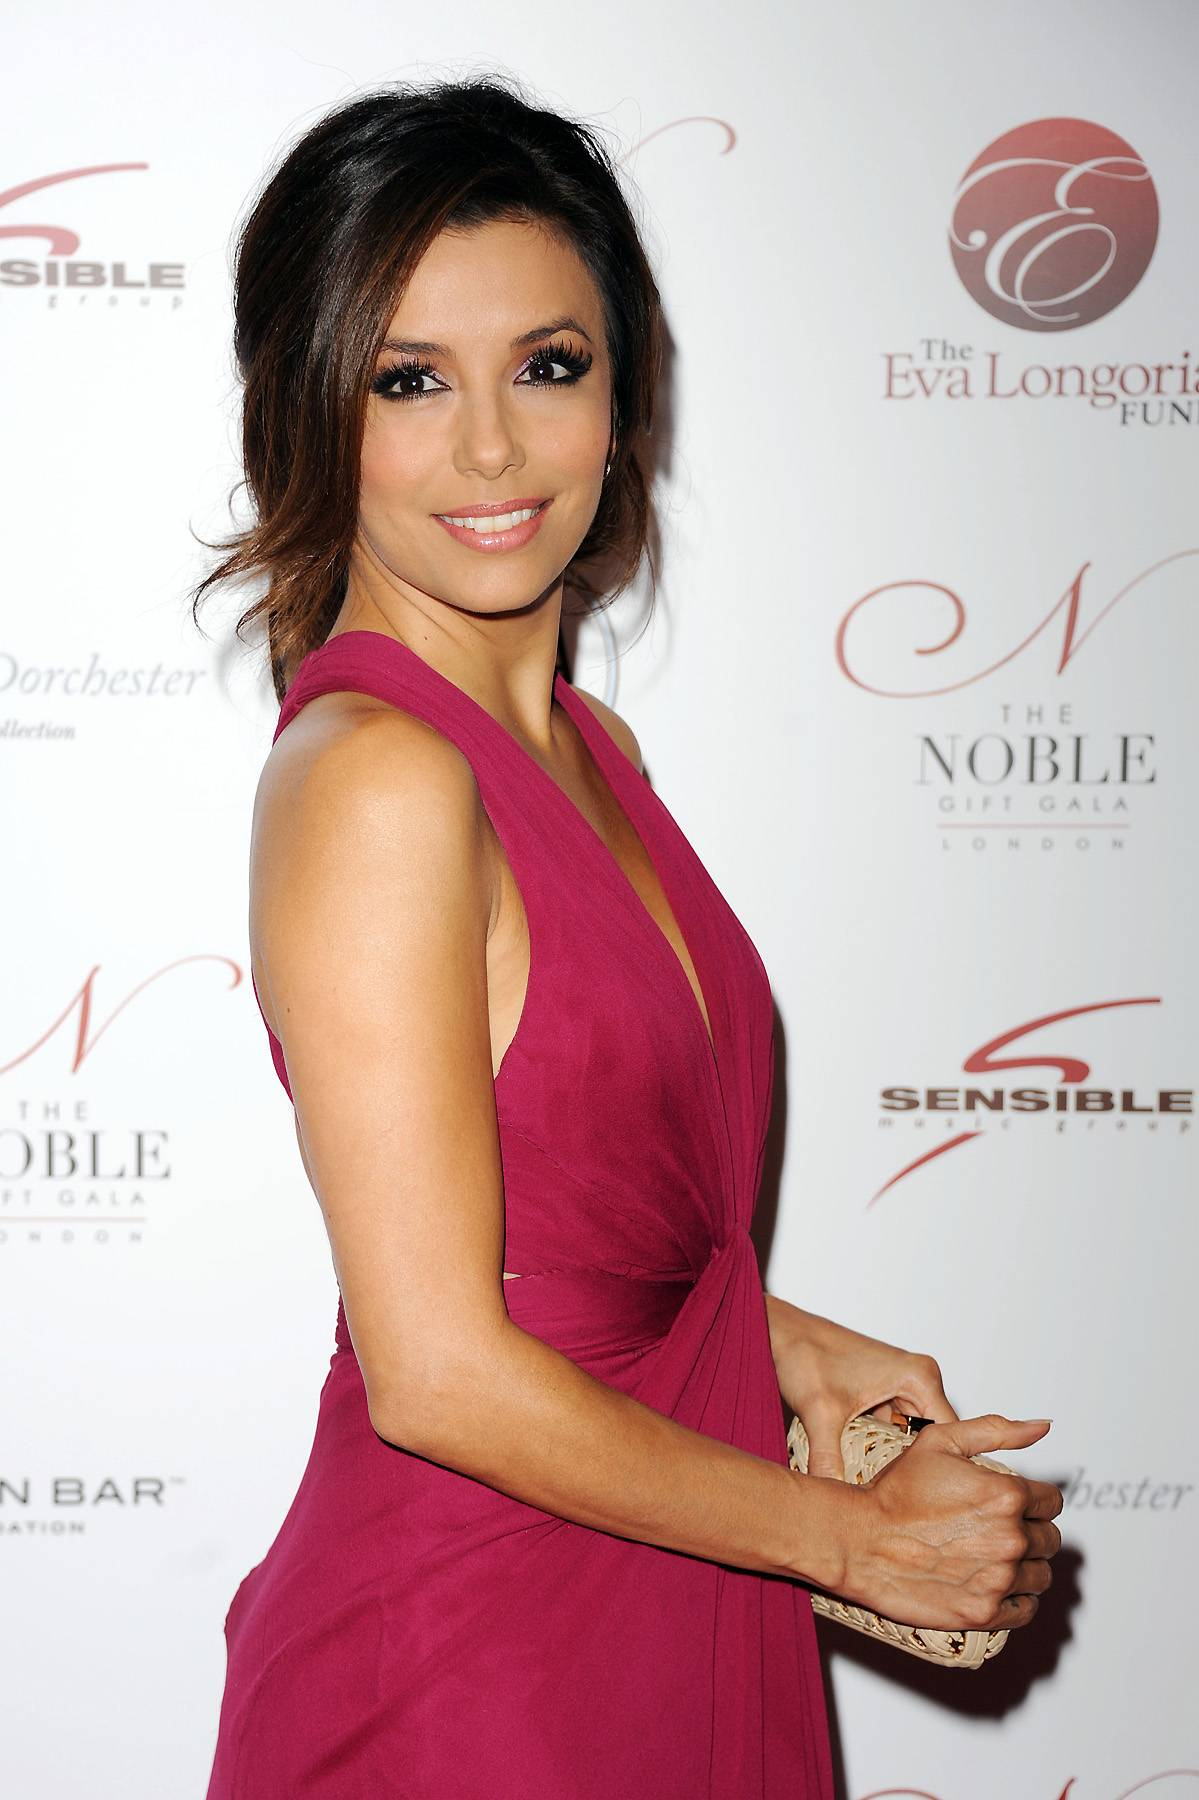 Eva Longoria - Eva Longoria is co-chair of the Obama for America campaign. She is also an actress best known for her role on the television show Desperate Housewives.(Photo: Stuart Wilson/Getty Images)